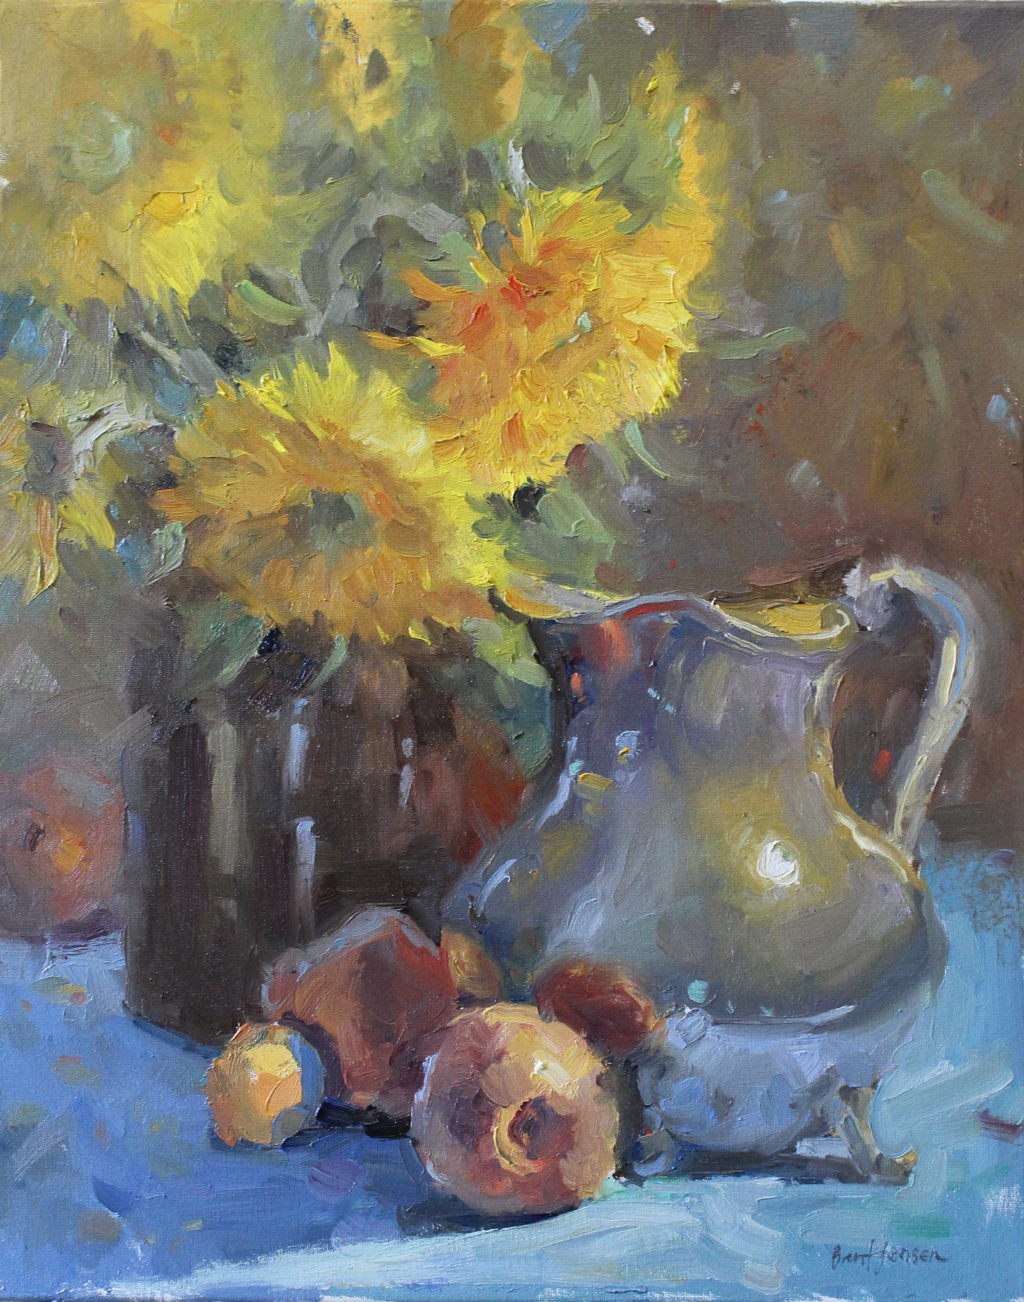 Sunflowers and Peaches by Brent Jensen